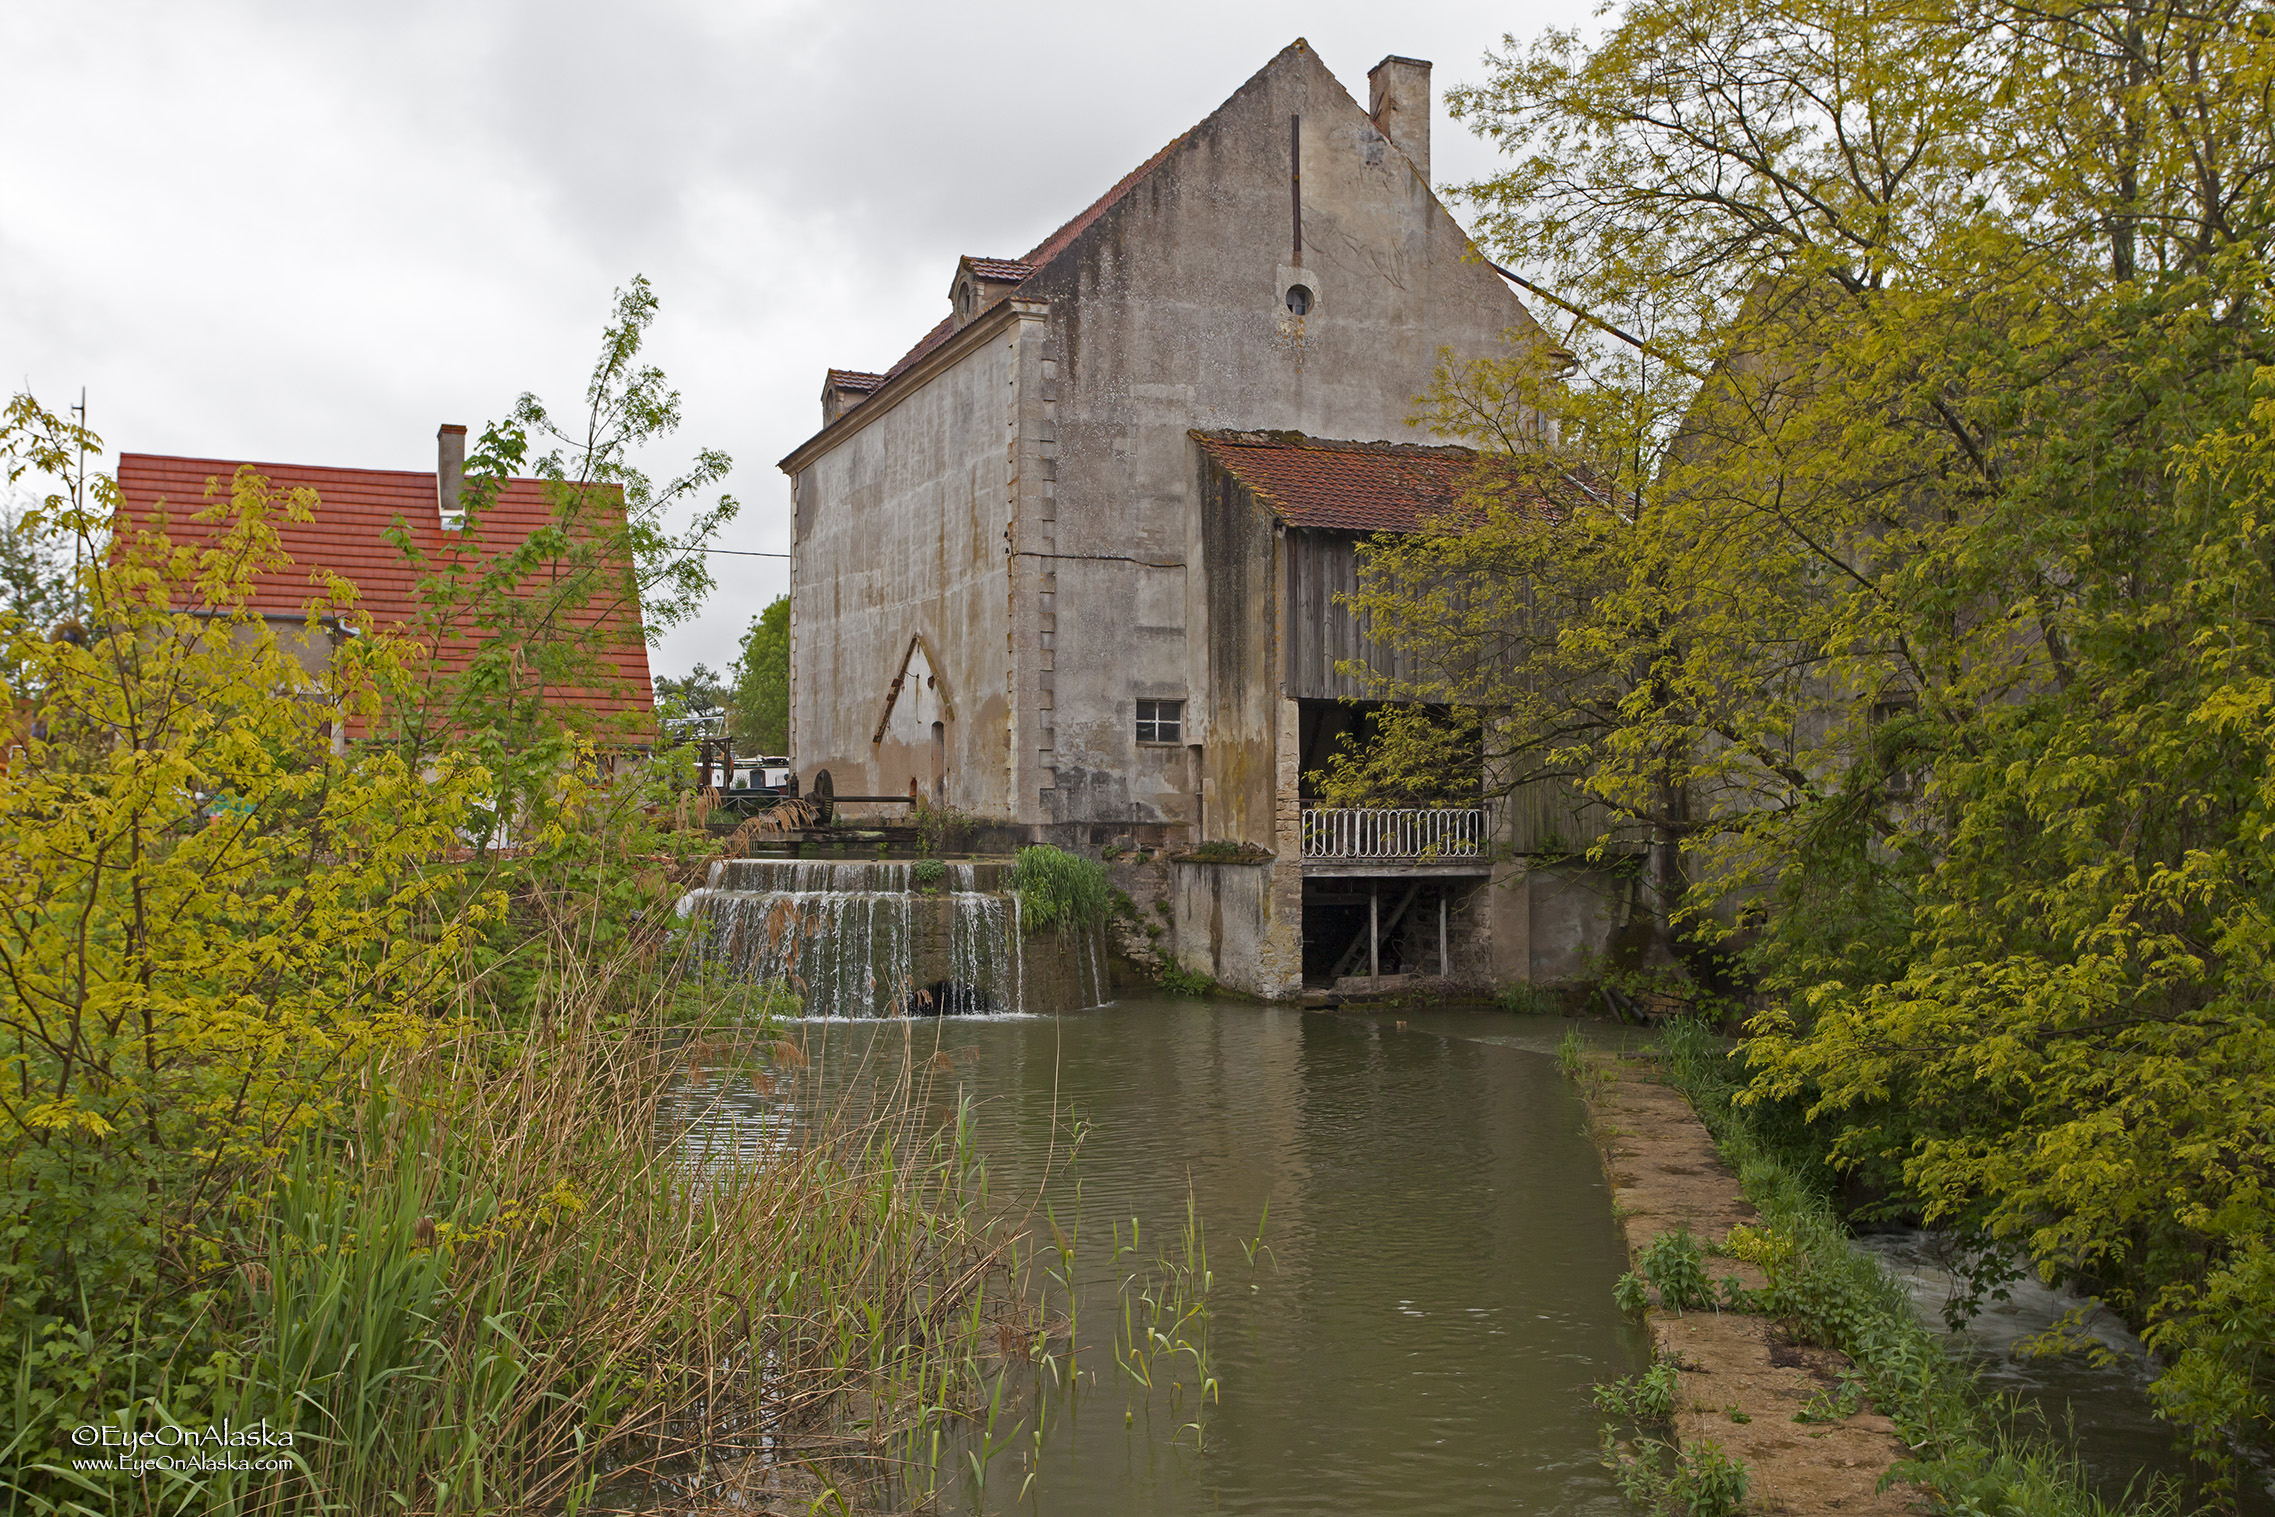 An old water powered mill along the canal.